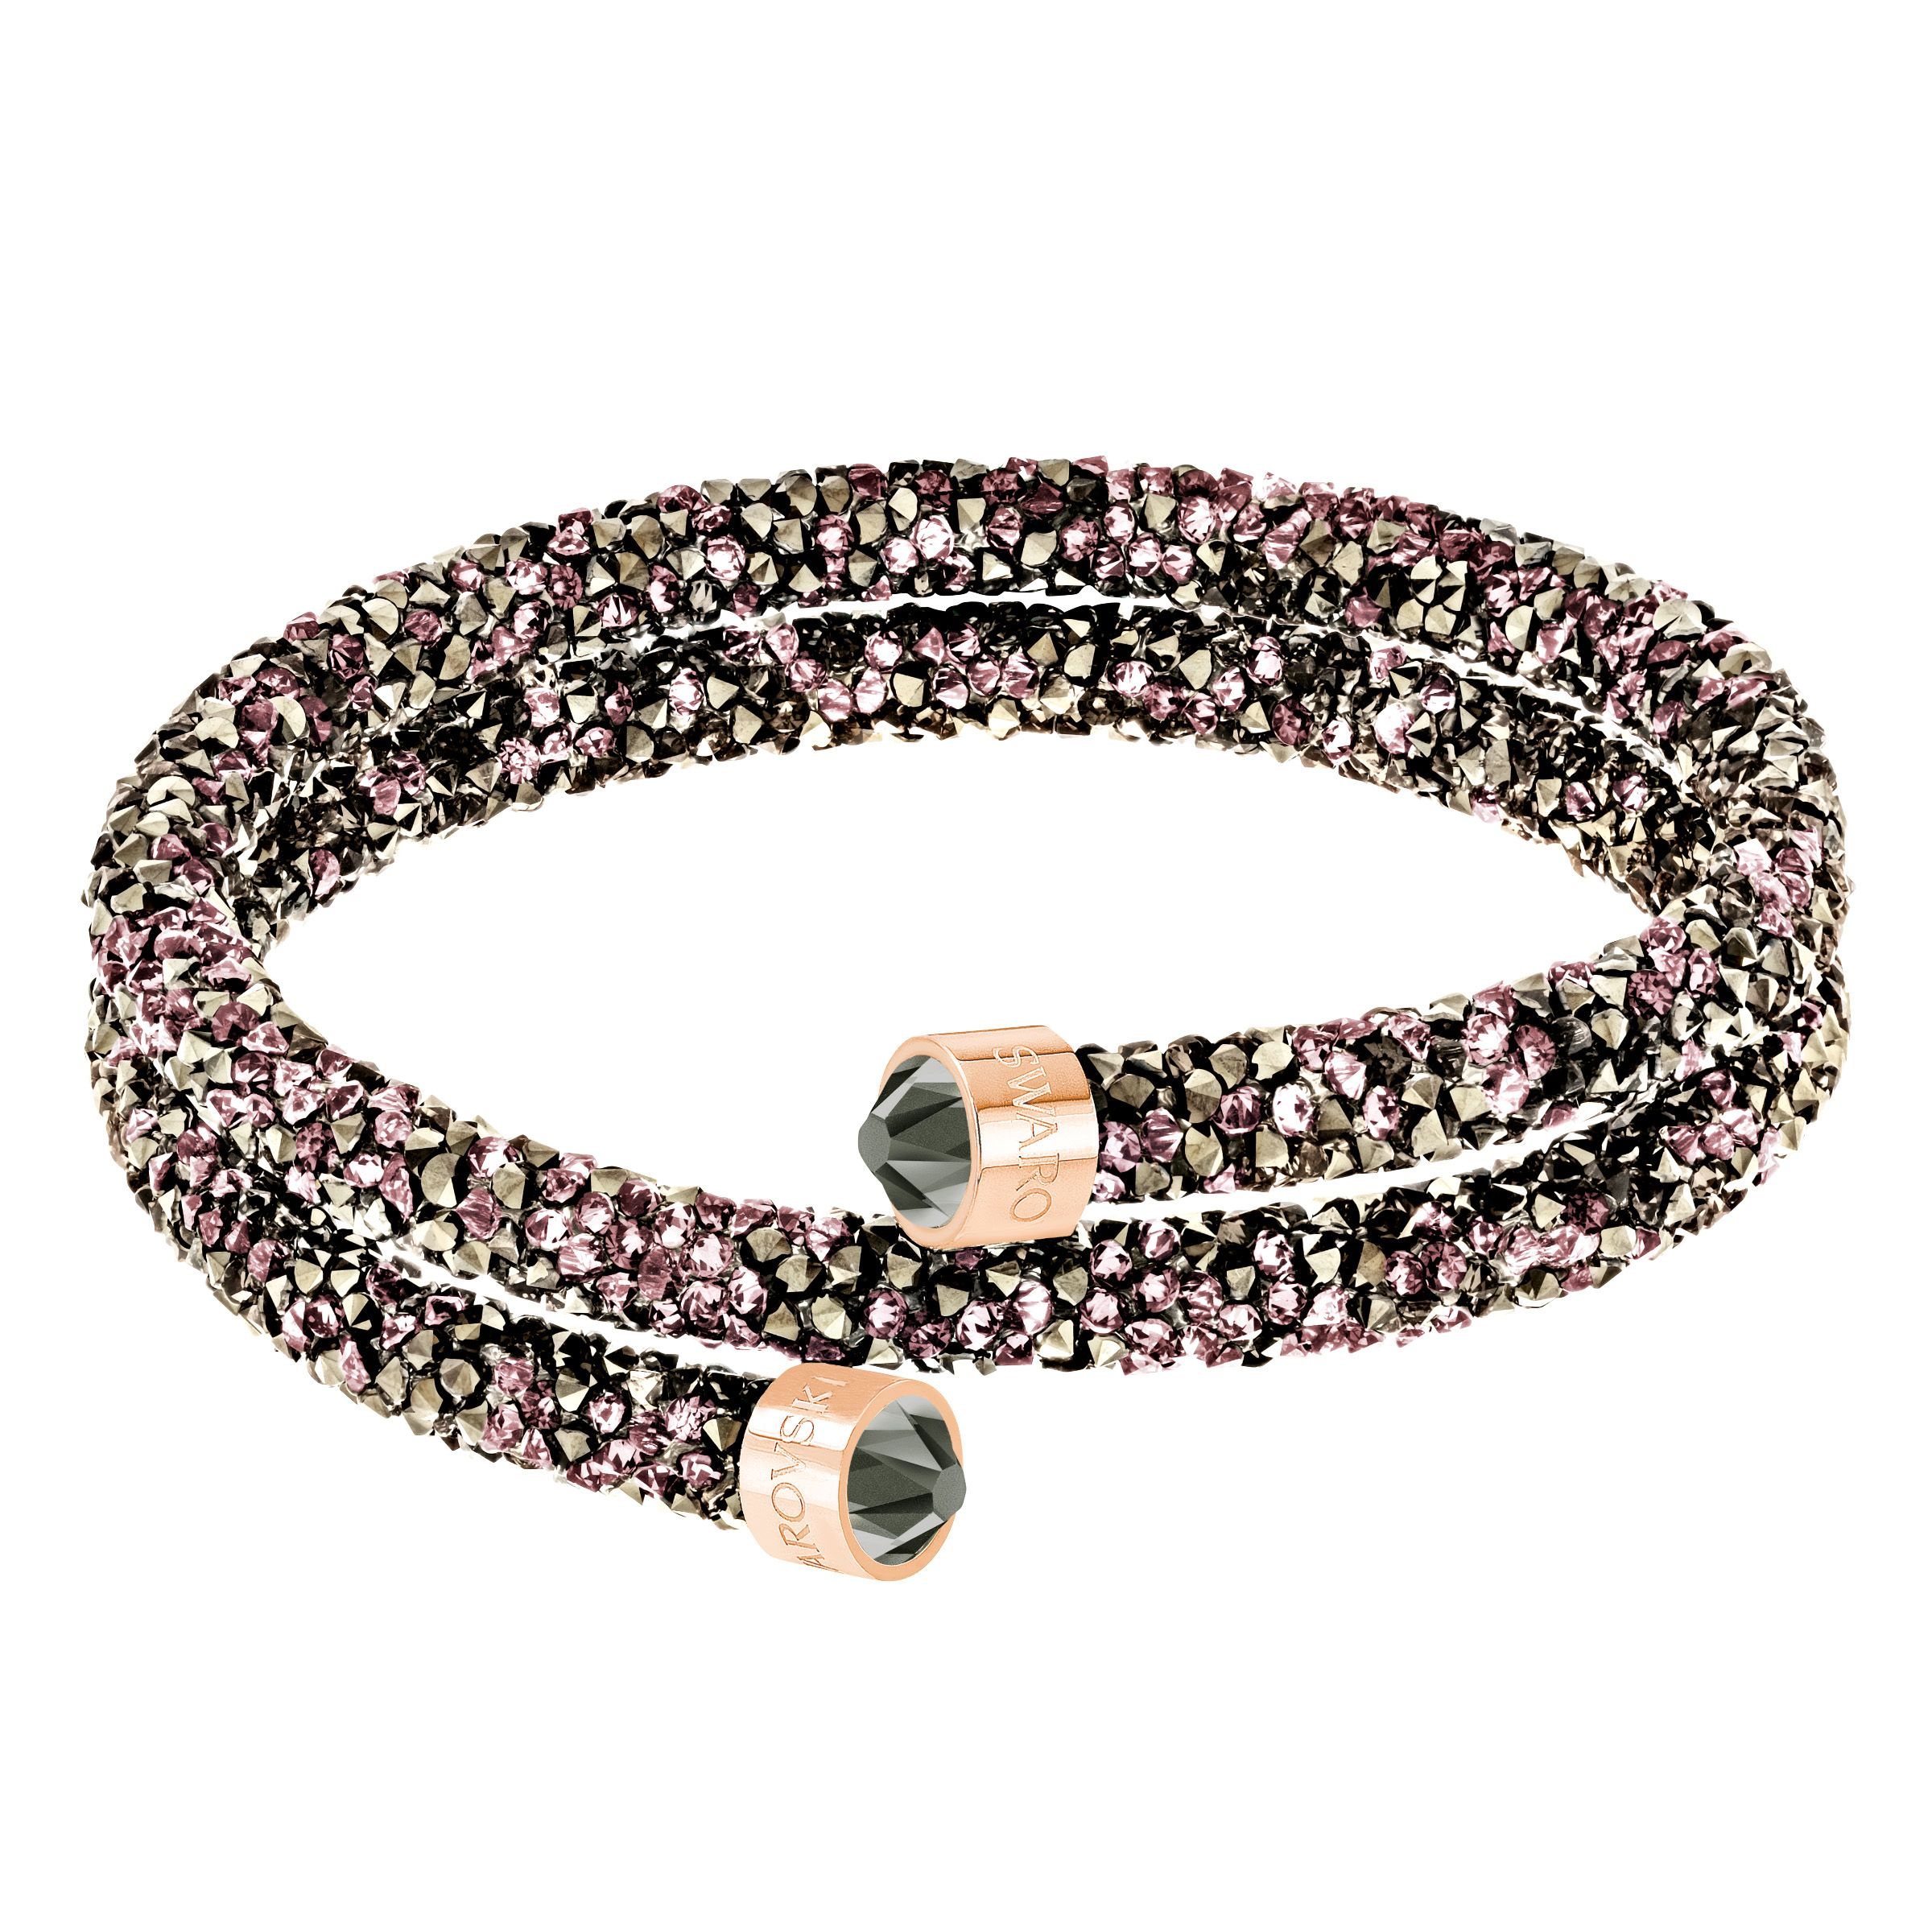 Swarovski CRYSTALDUST BANGLE, Silverlic